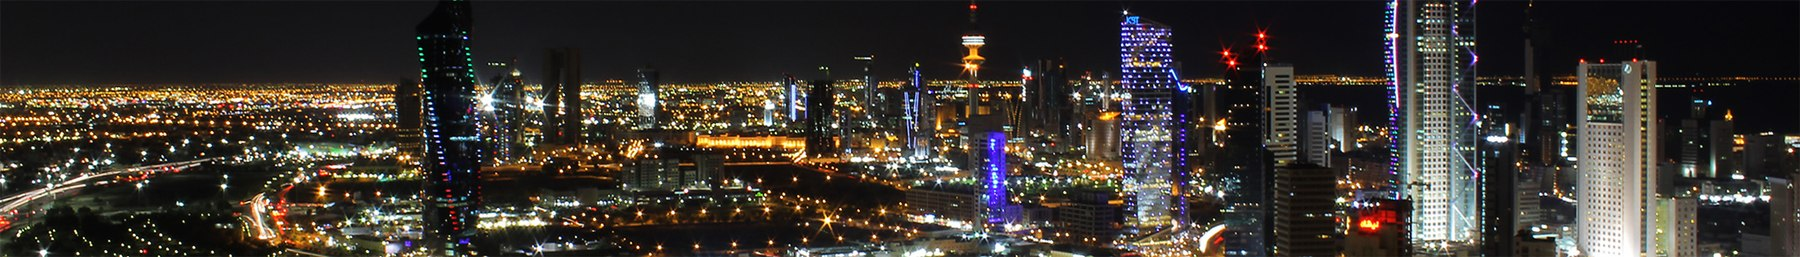 Kuwait City night banner.jpg